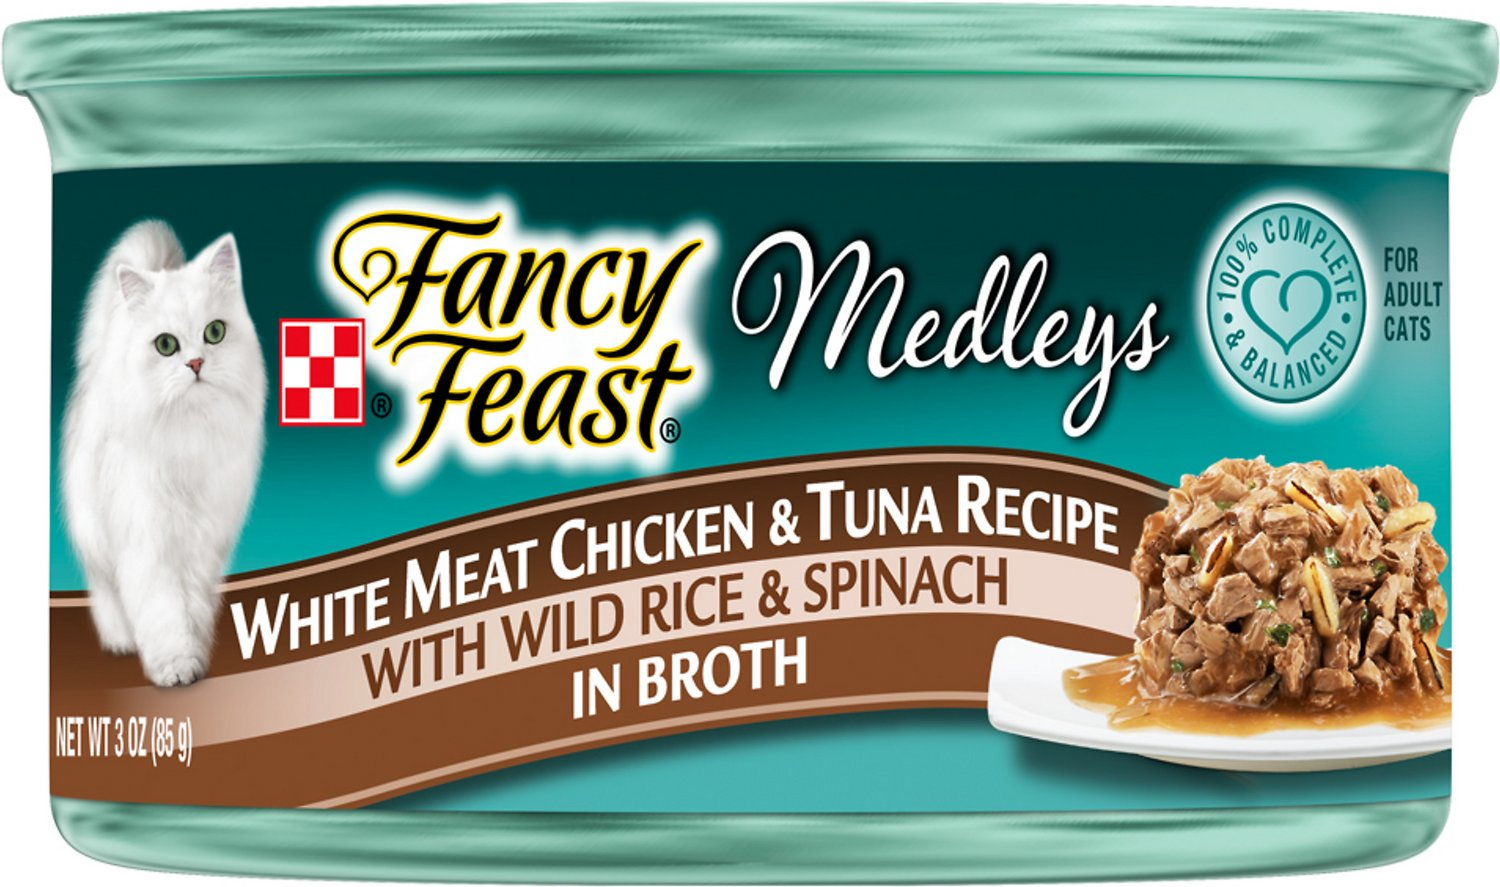 Fancy feast medleys tastemakers white meat chicken tuna recipe video forumfinder Image collections